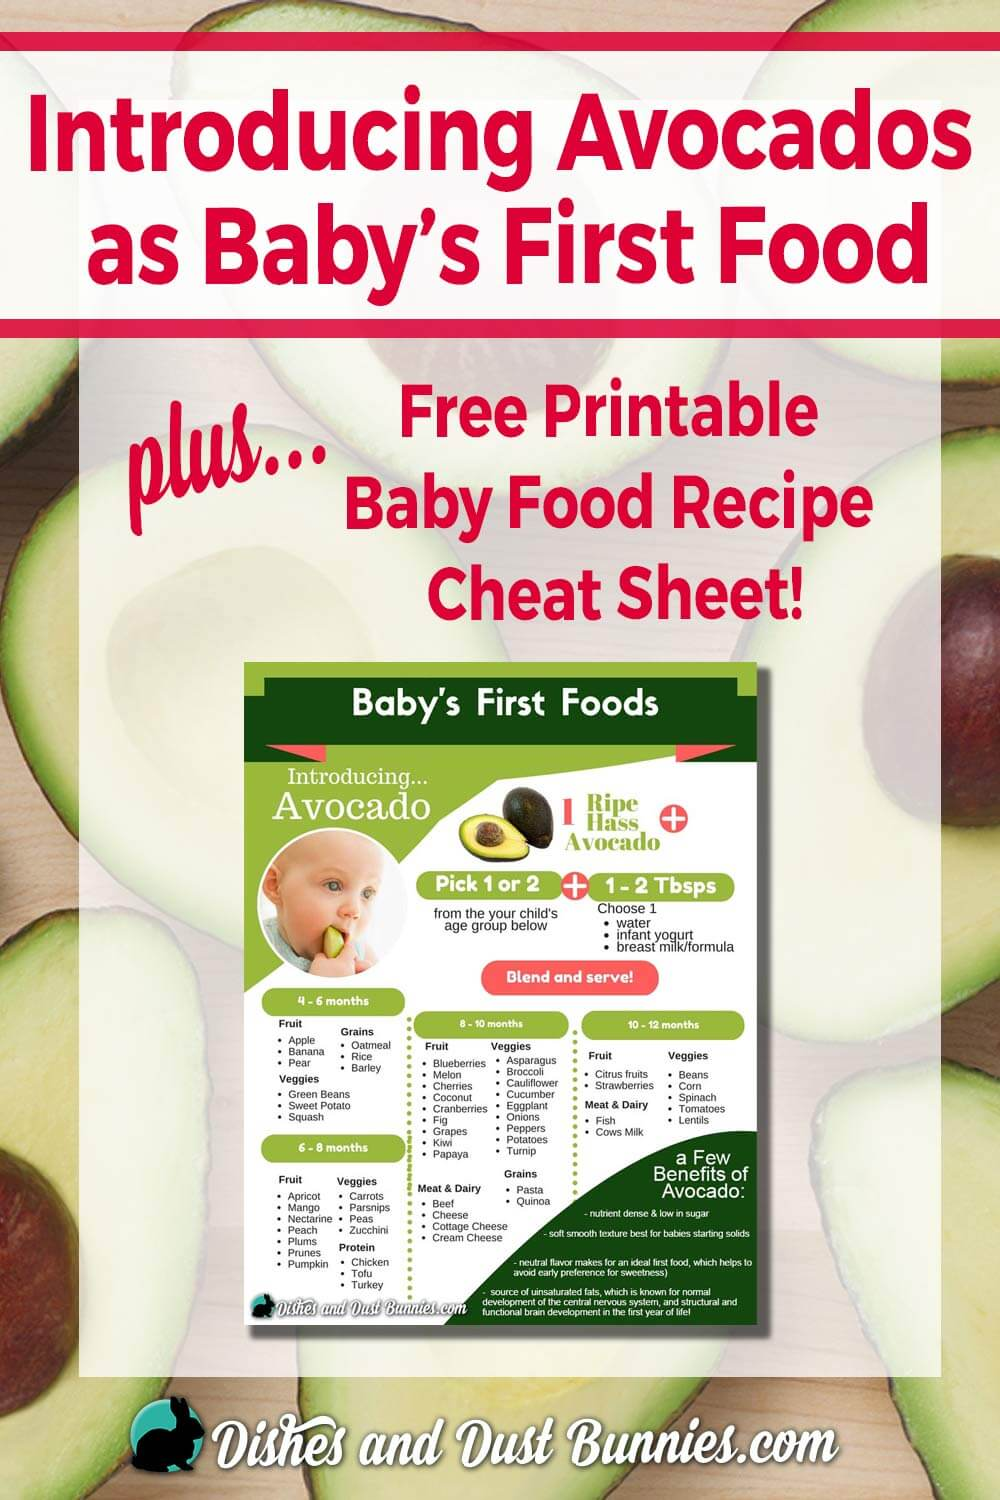 Introducing Avocados as Baby's First Food + Free Baby Food Recipe Cheat Sheet!